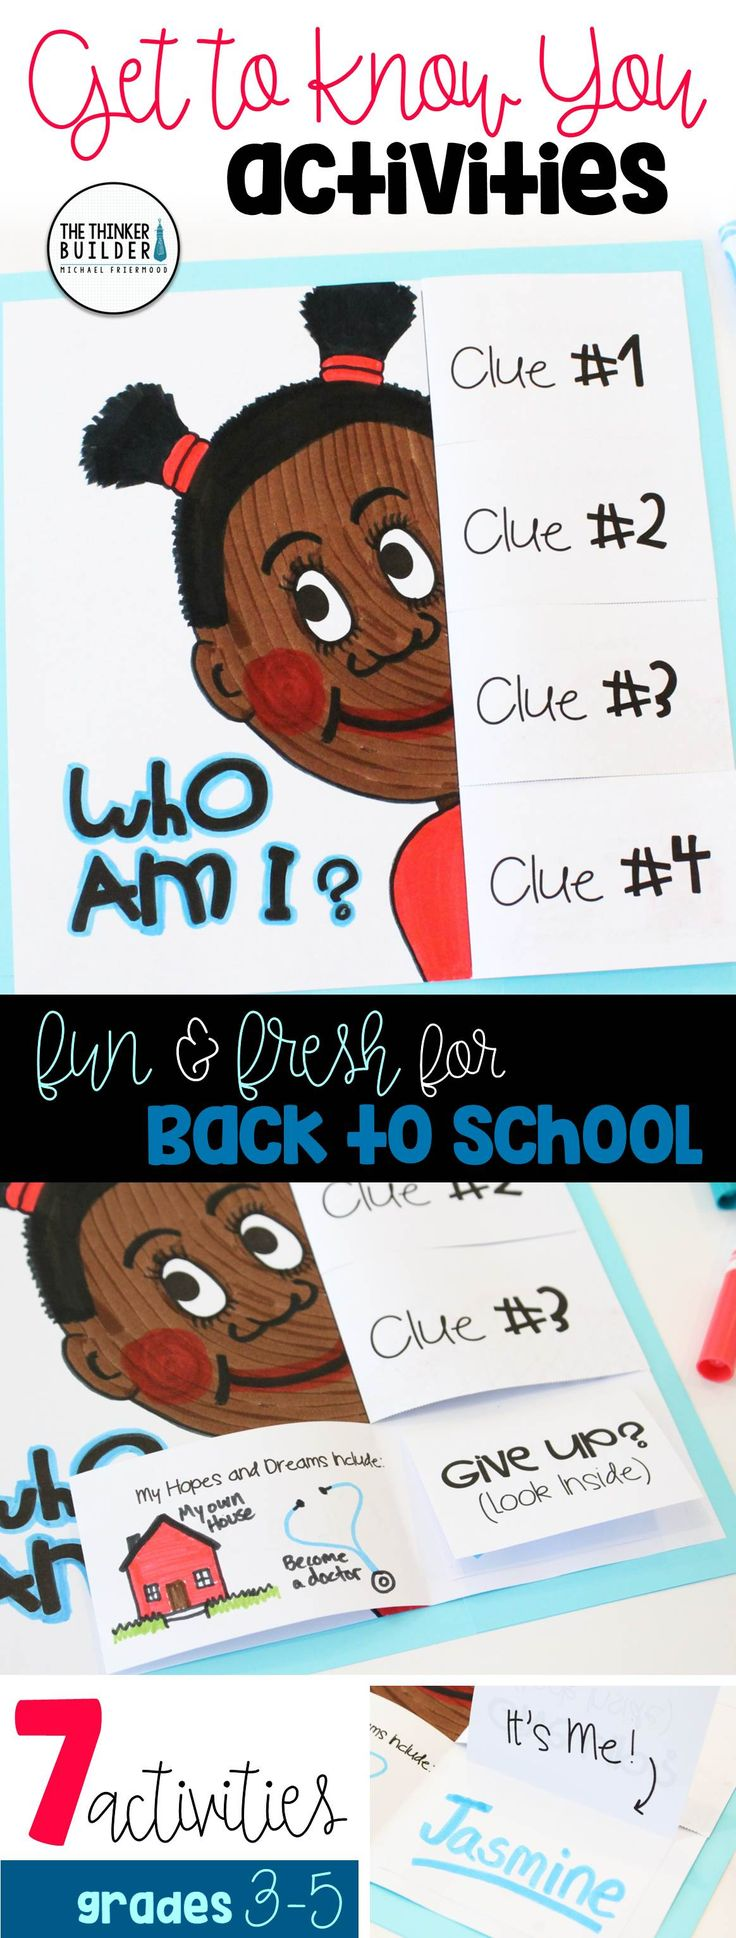 """Fun and fresh get-to-know-you activities for the beginning of the year, including a """"Who Am I?"""" poster with flip-open clues, """"A Maze of New Friends"""" activity, and more! 7 total activities, perfect for back-to-school! Gr. 3-5 ($). Click the image for details, or see the bundle of BOTH my Get-to-Know-You Activity Packs here: https://www.teacherspayteachers.com/Product/Back-to-School-Activities-Get-To-Know-You-BUNDLE-2-Packs-1984515"""